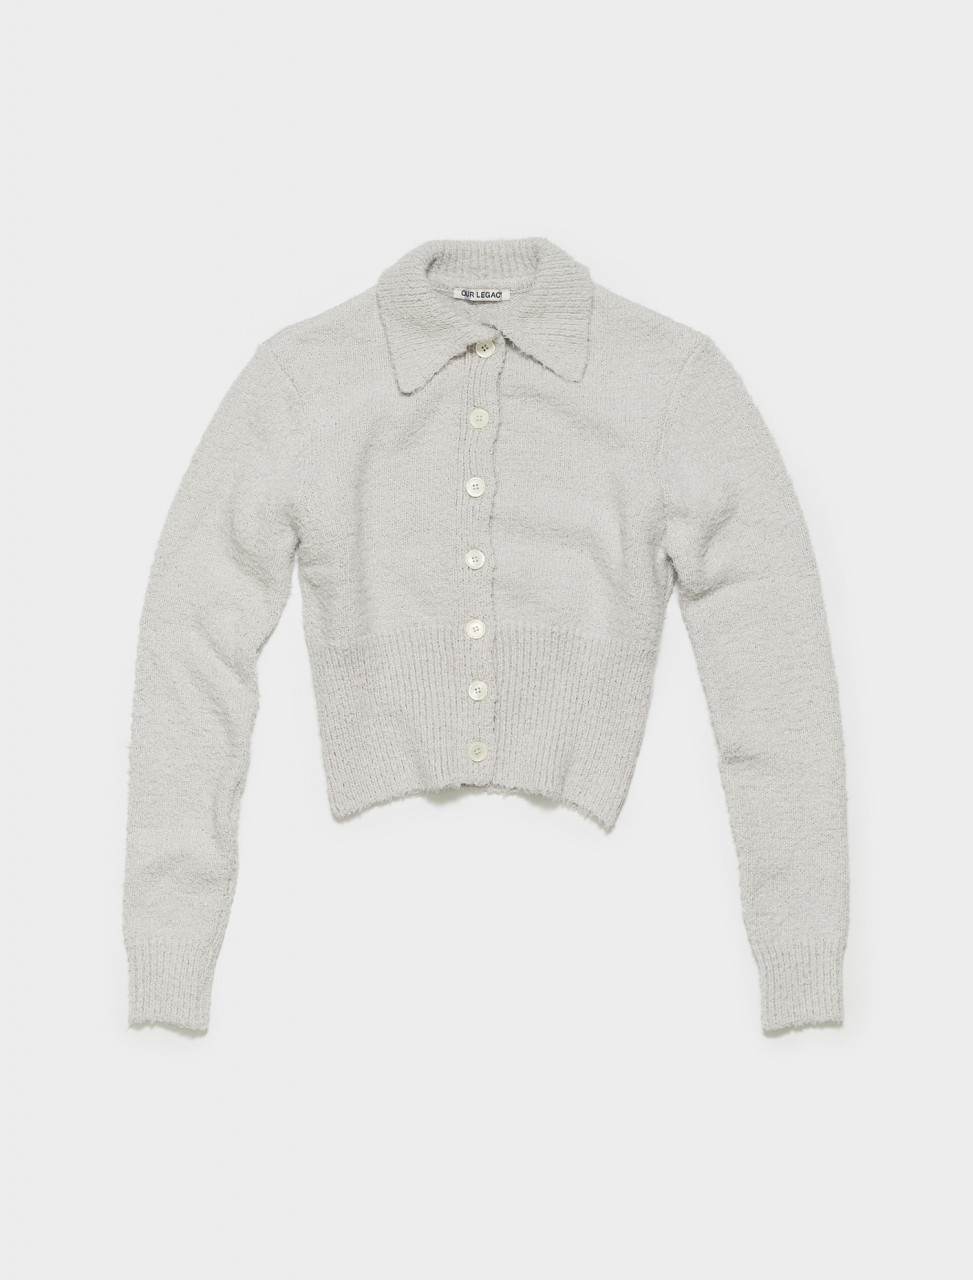 W2213PL OUR LEGACY POLO CARDIGAN IN LAVENDER CLOUDY COTTON